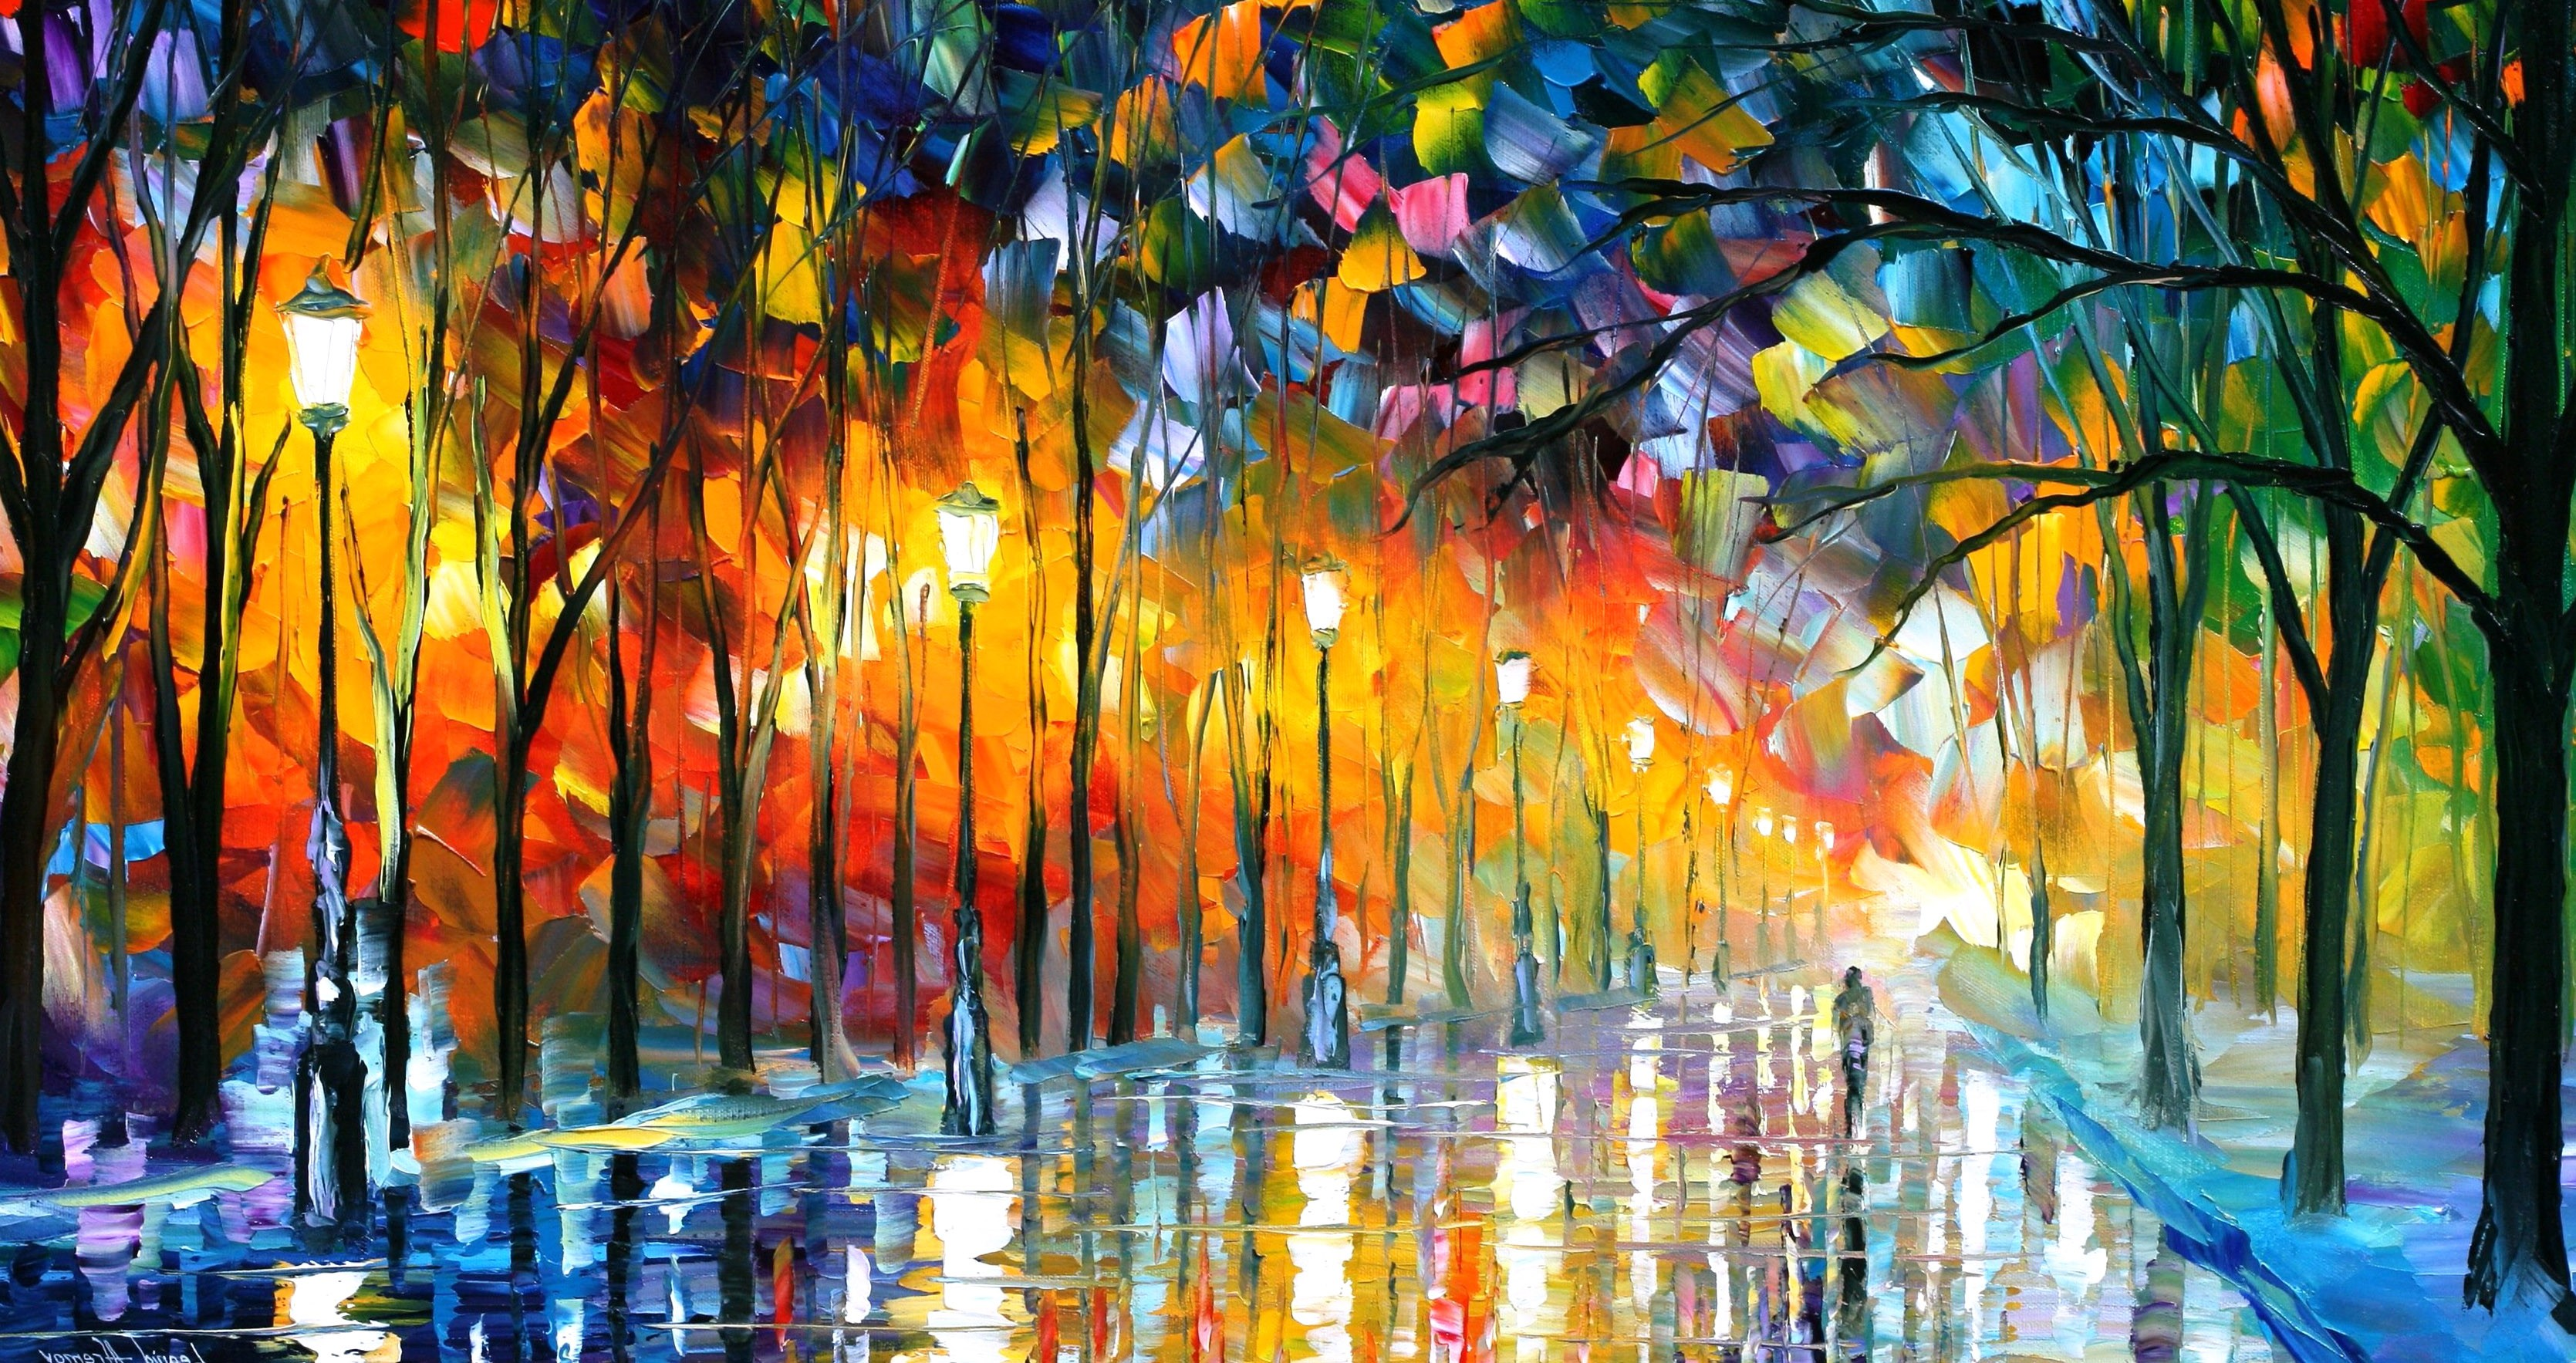 Abstract Modern Paintings Amazing Colorful Absract Best Arts 3339x1767